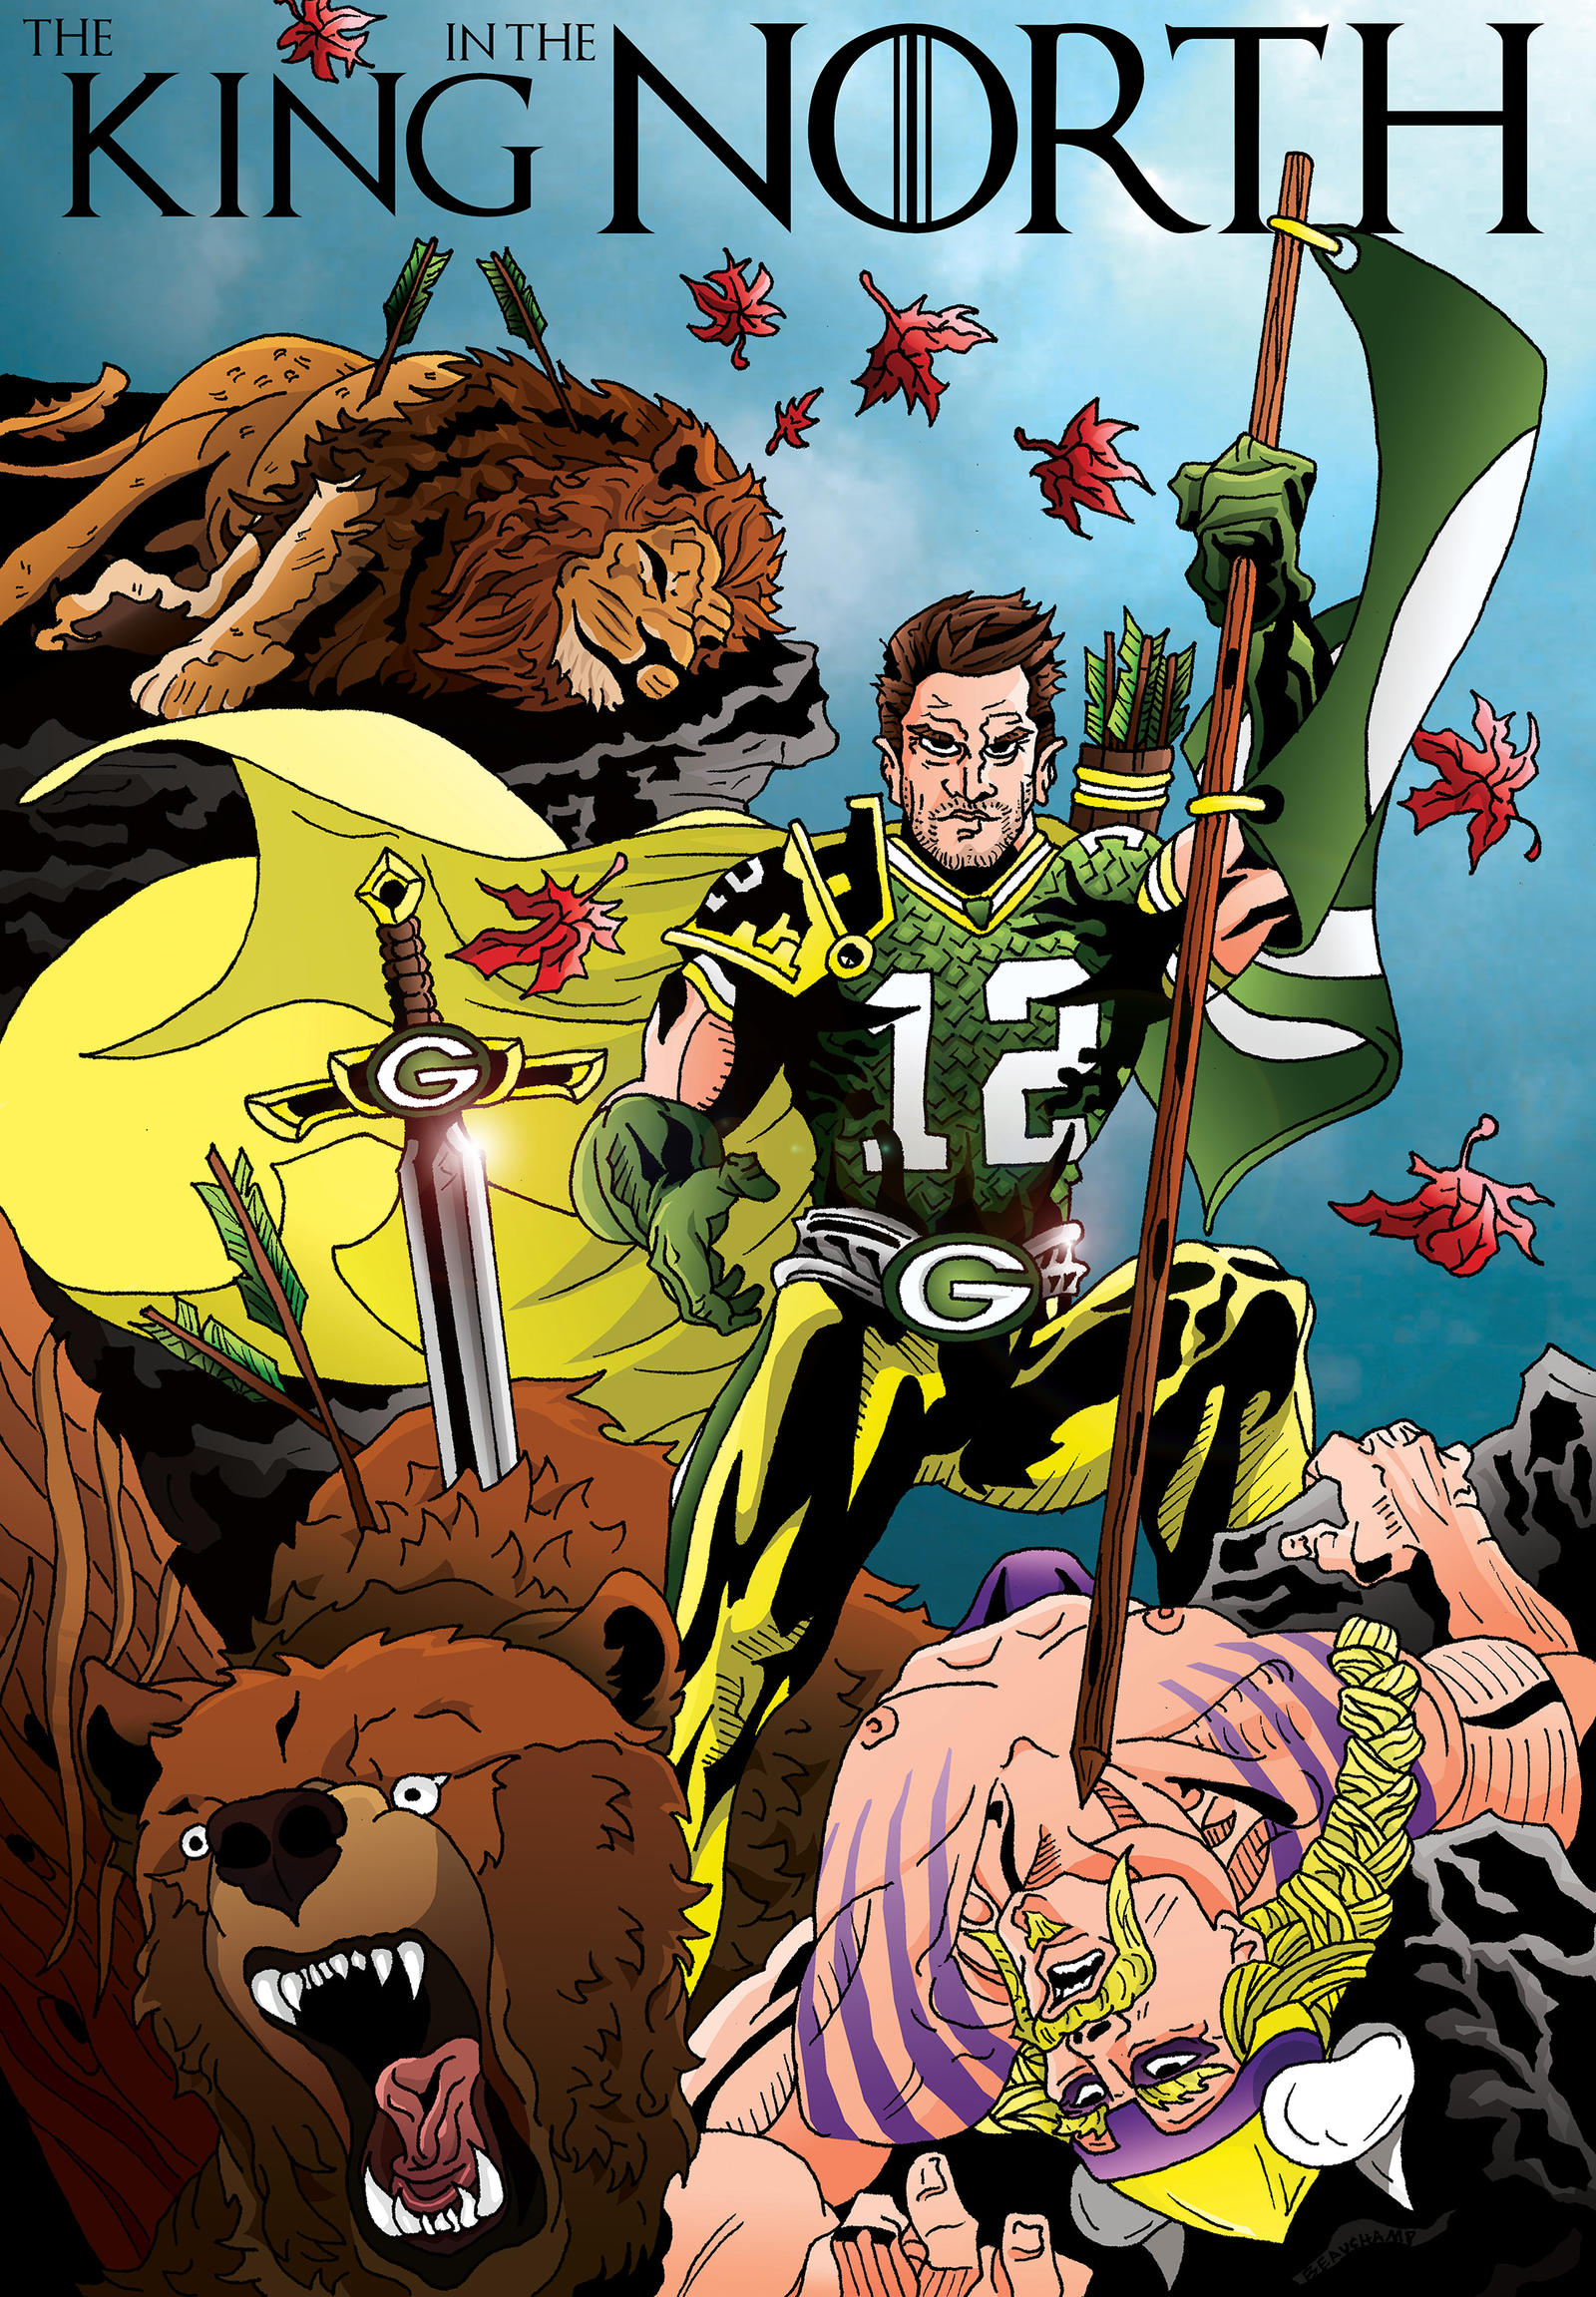 aaron_rodgers_king_in_the_north_by_beauchal d5plzx3 post nfc north championship meme thread greenbaypackers